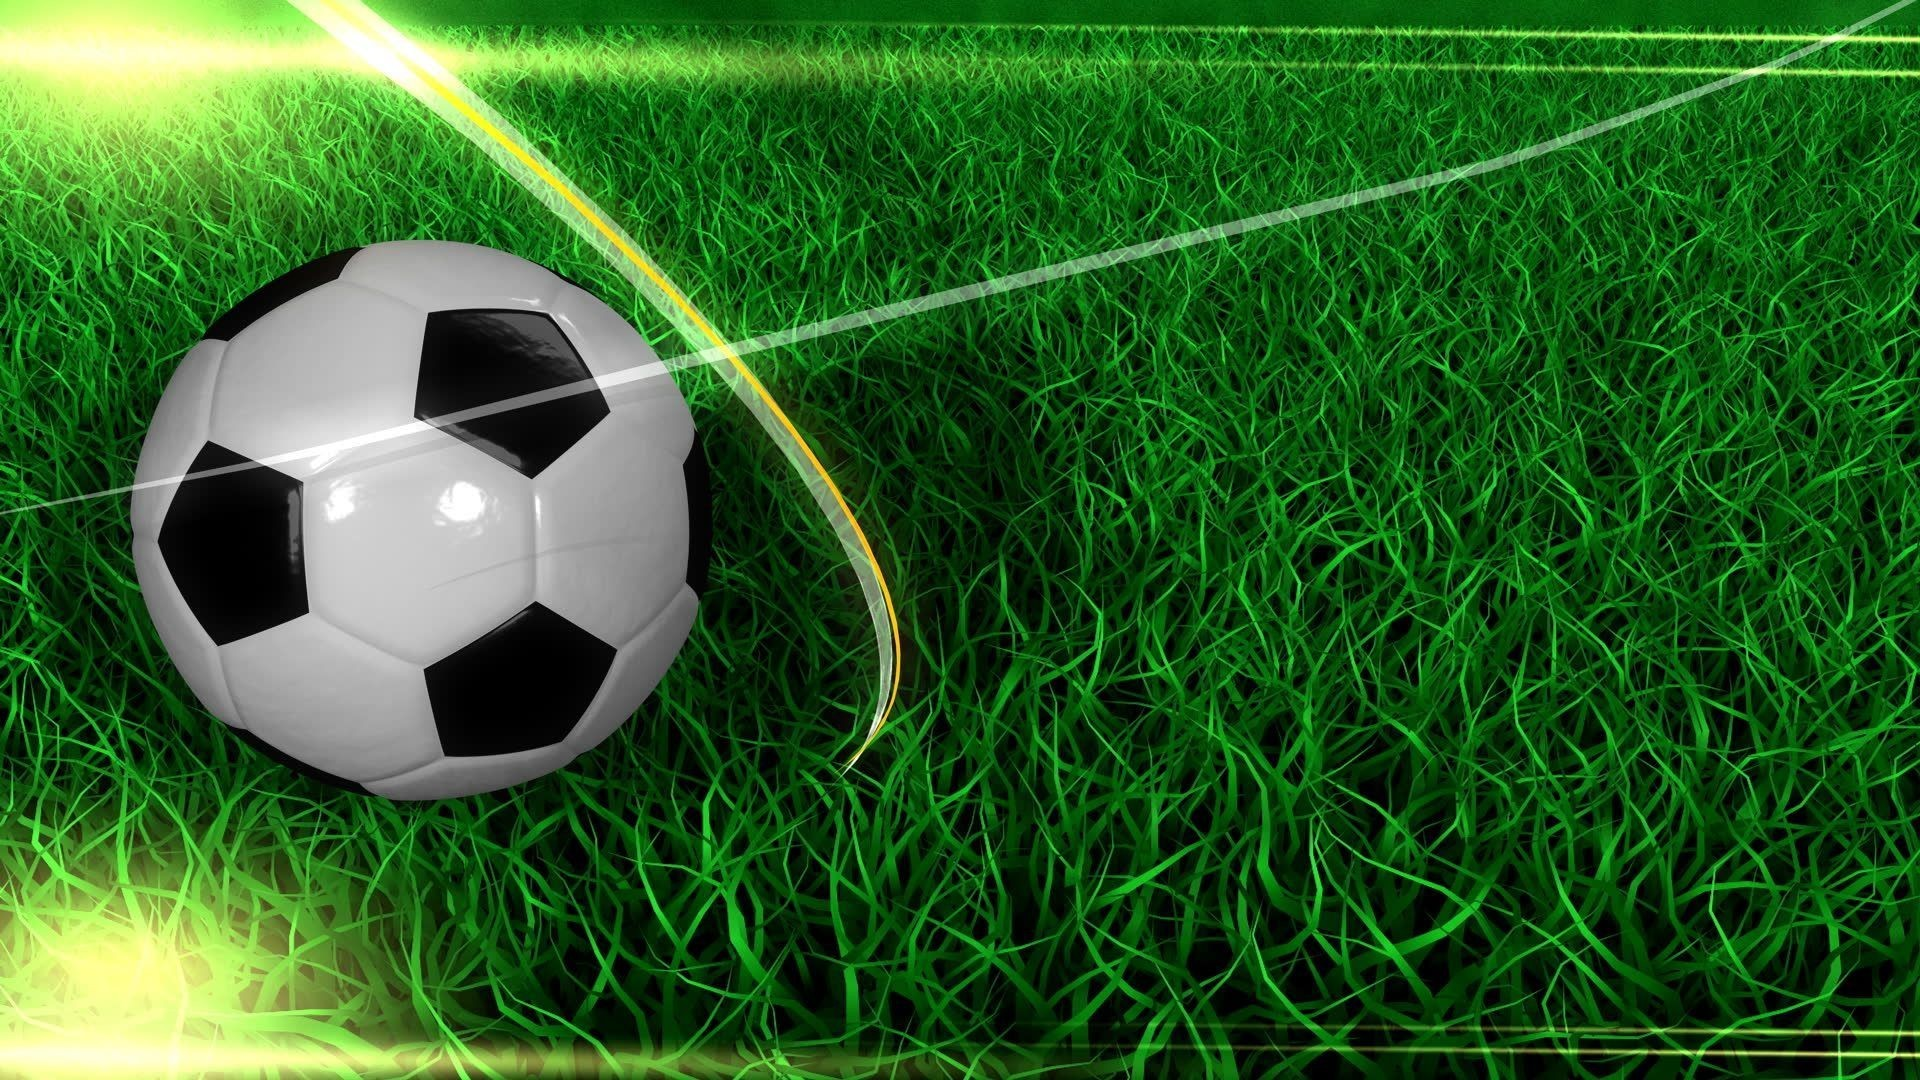 Soccer Backgrounds 54 Images HD Wallpapers Download Free Images Wallpaper [1000image.com]